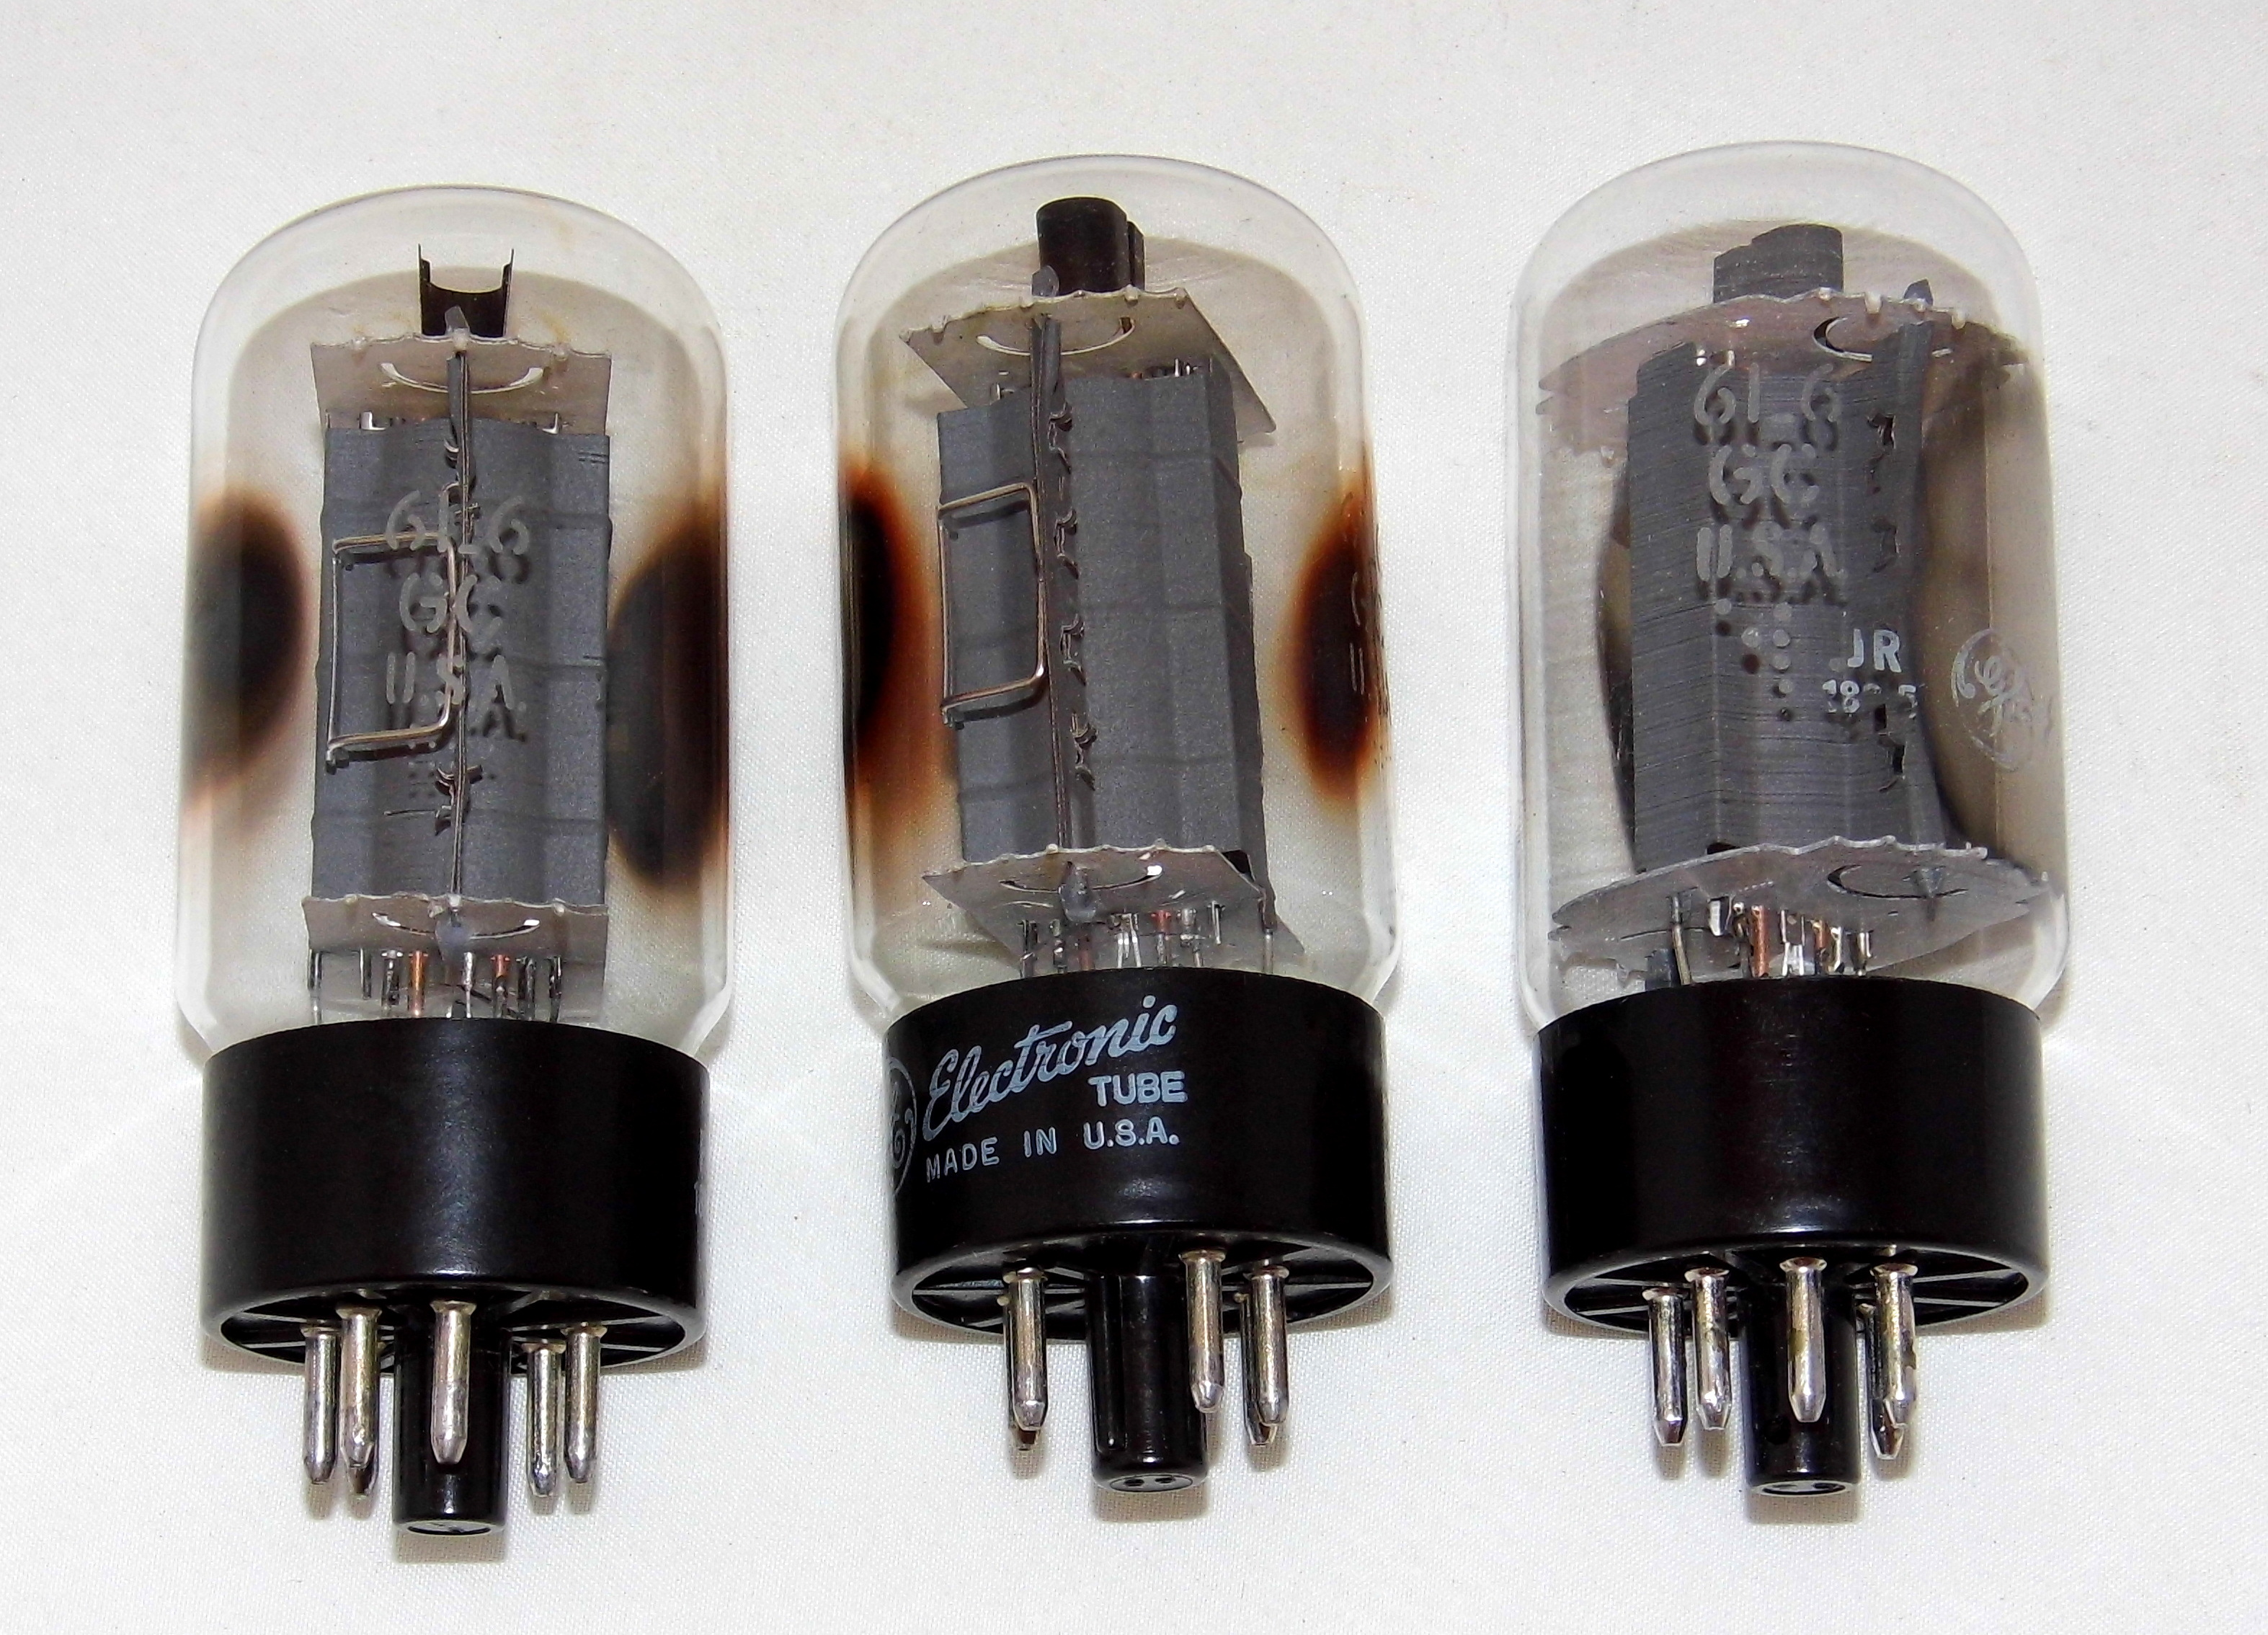 Filetrio Of Vintage General Electric Type 6l6gc Vacuum Tubes Made Tube Diodes In Usa